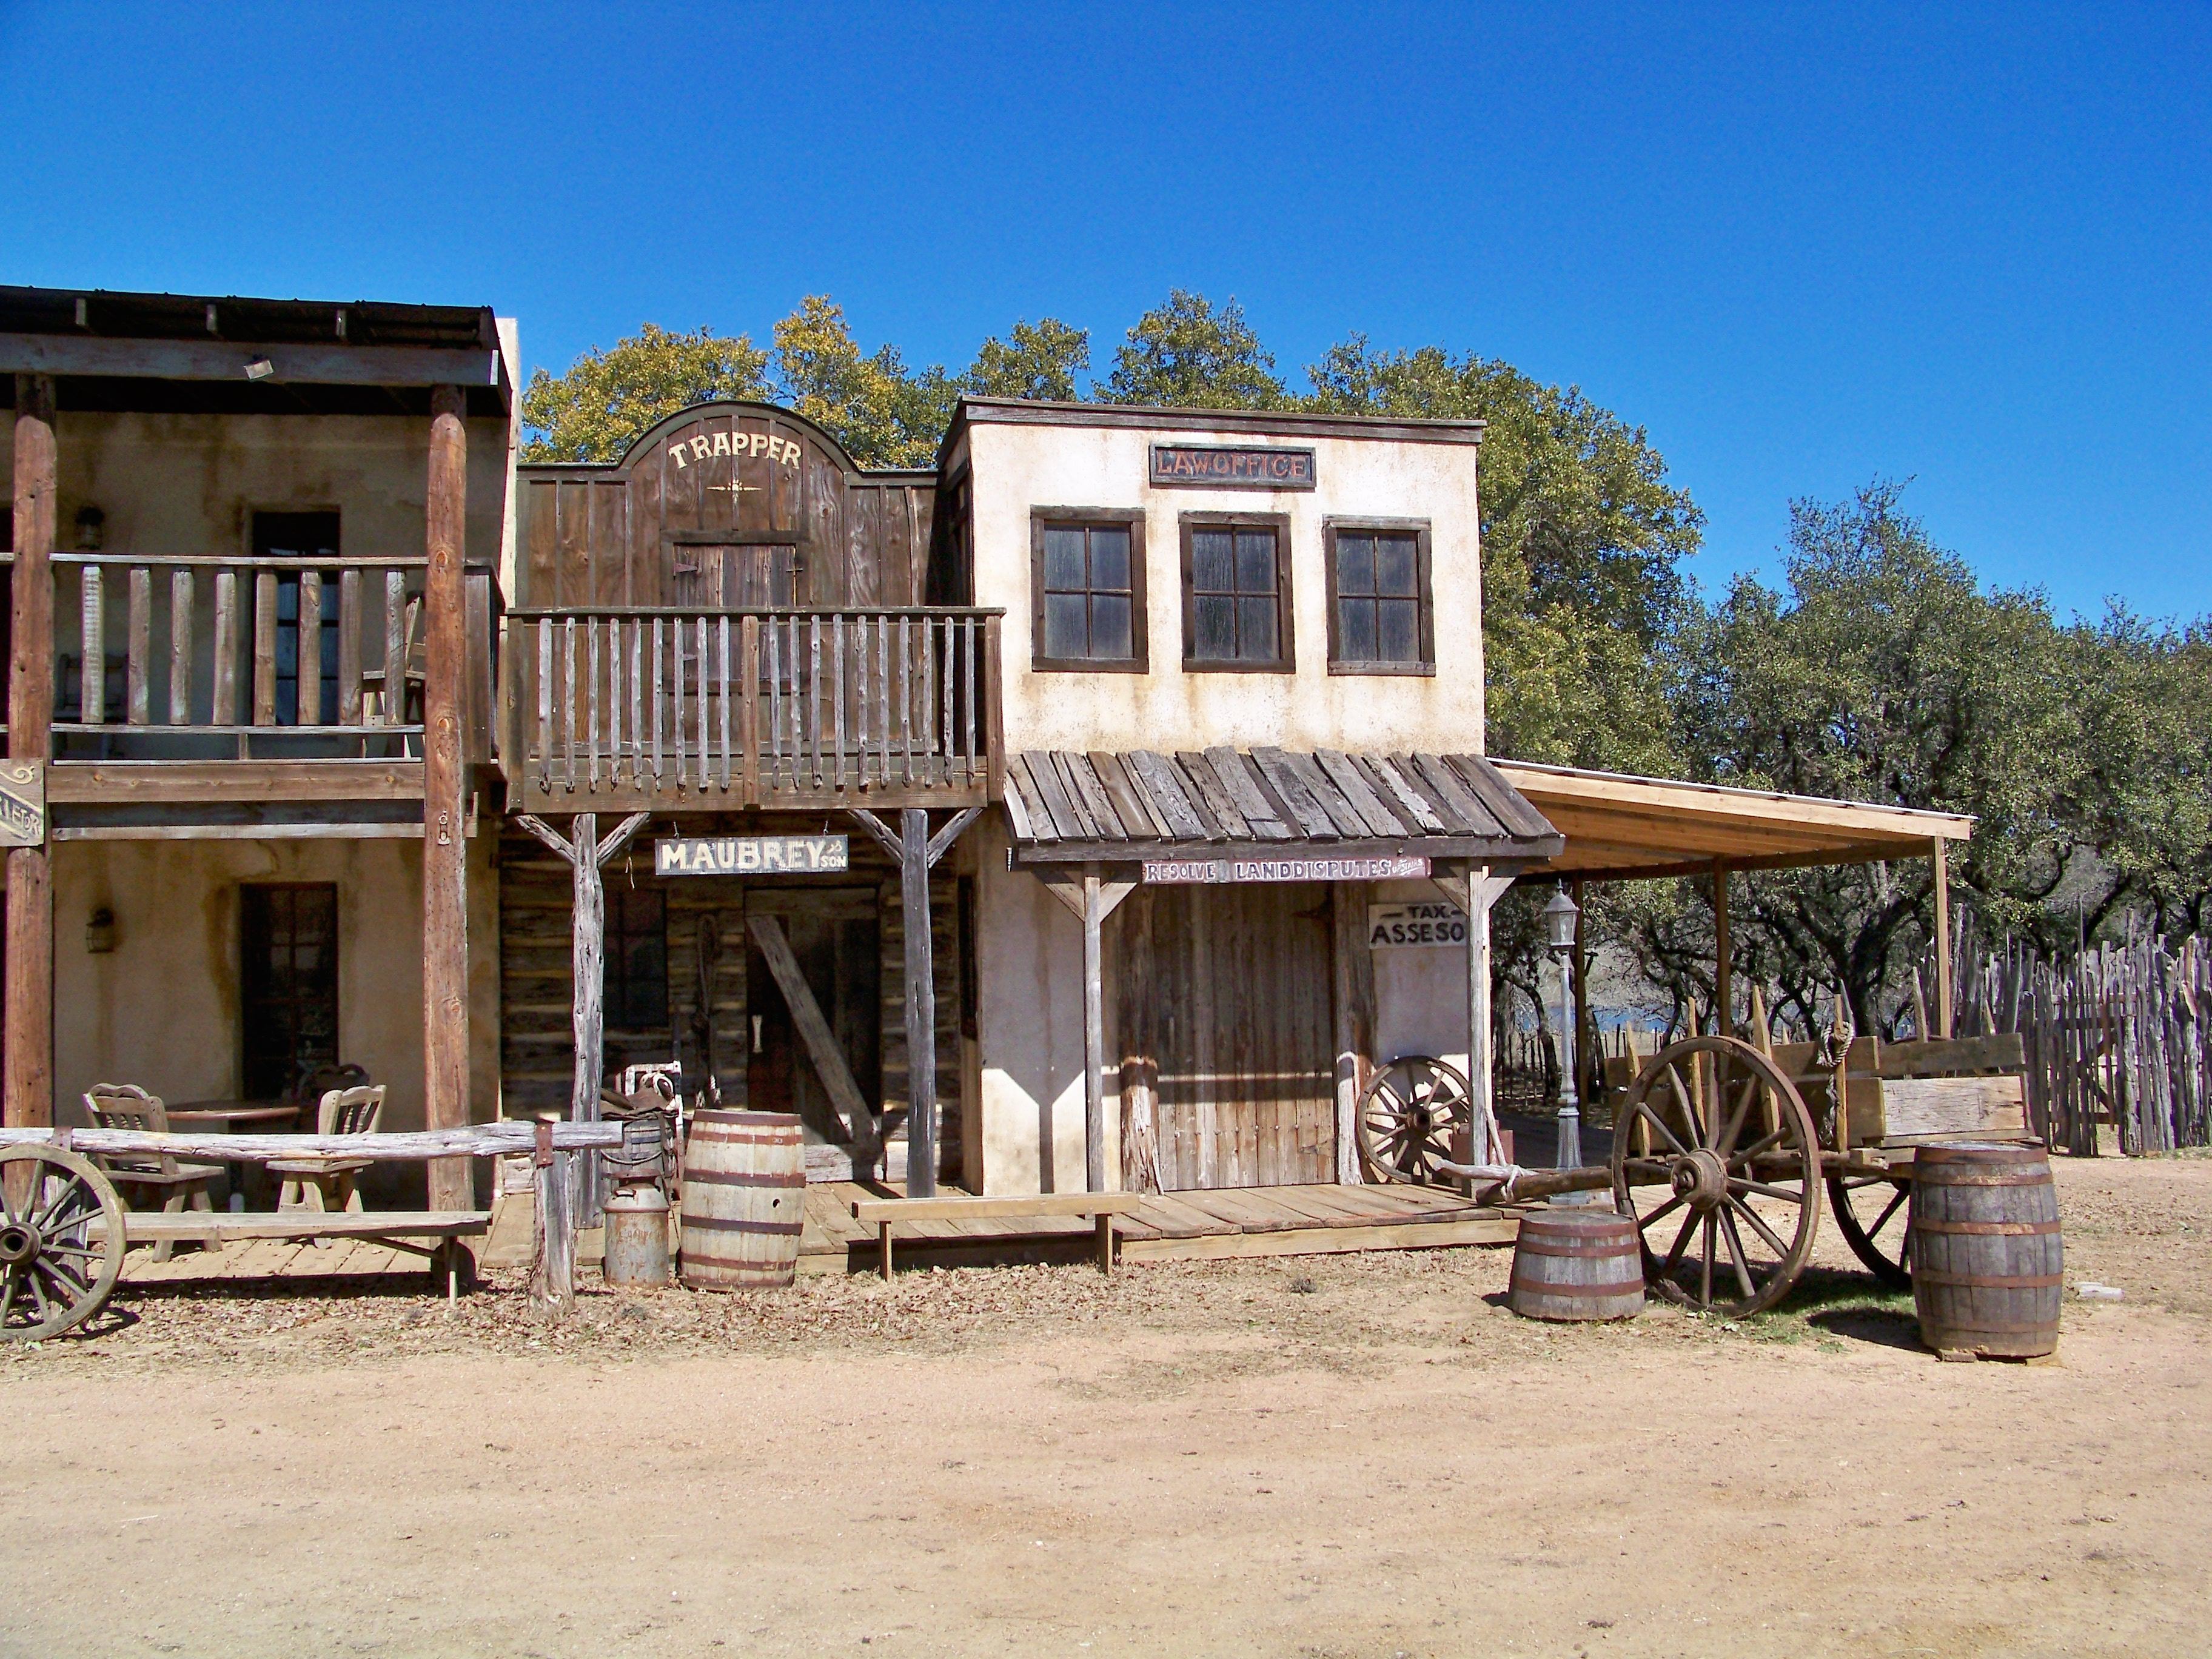 western town background - photo #17